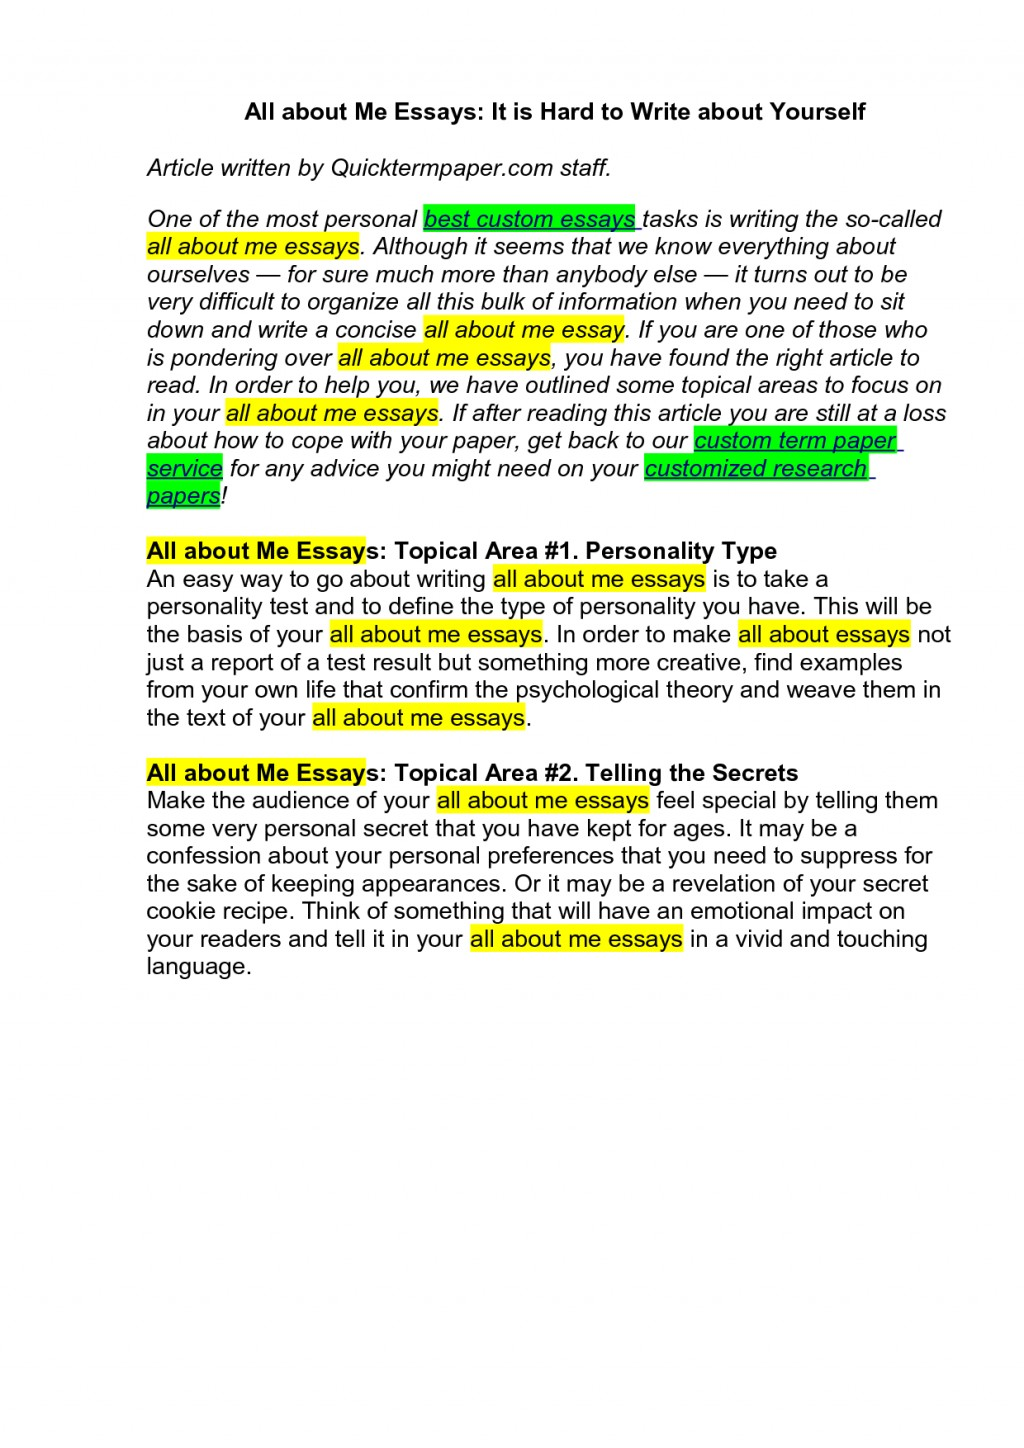 021 Essay Example How To Start An Amazing Analysis On A Book Ways With Question About Two Books Large